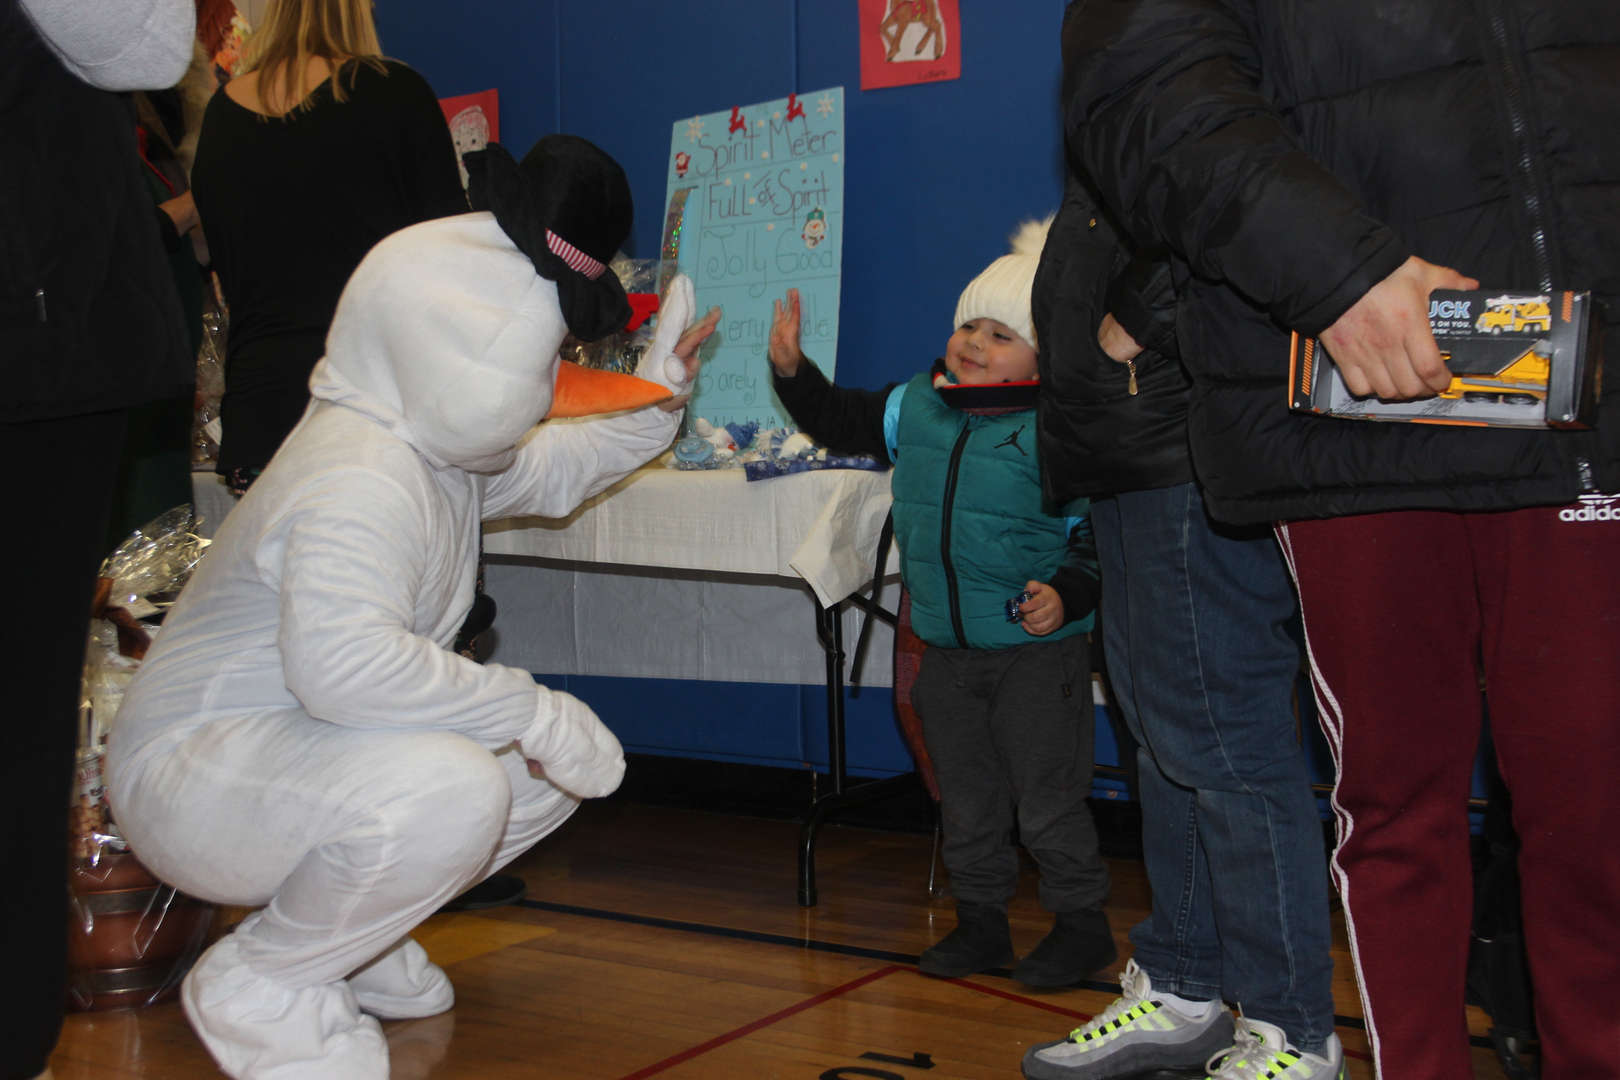 A staff member dressed as Frosty the Snowman gives a young boy a high-five.